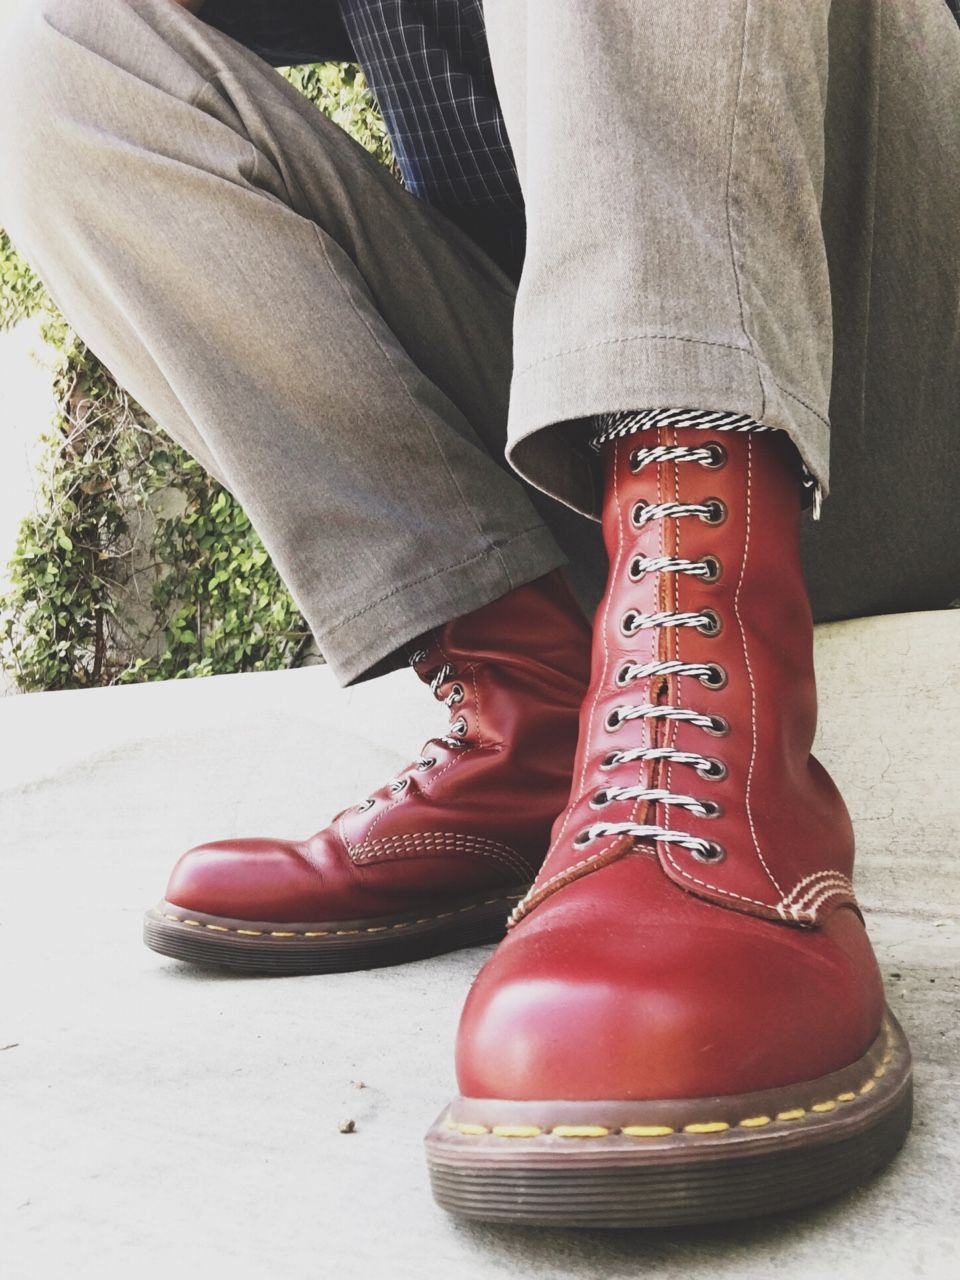 eb106b51580f49 Dr. Martens vintage 1490 boots with two tone laces - ArtaxRise ...